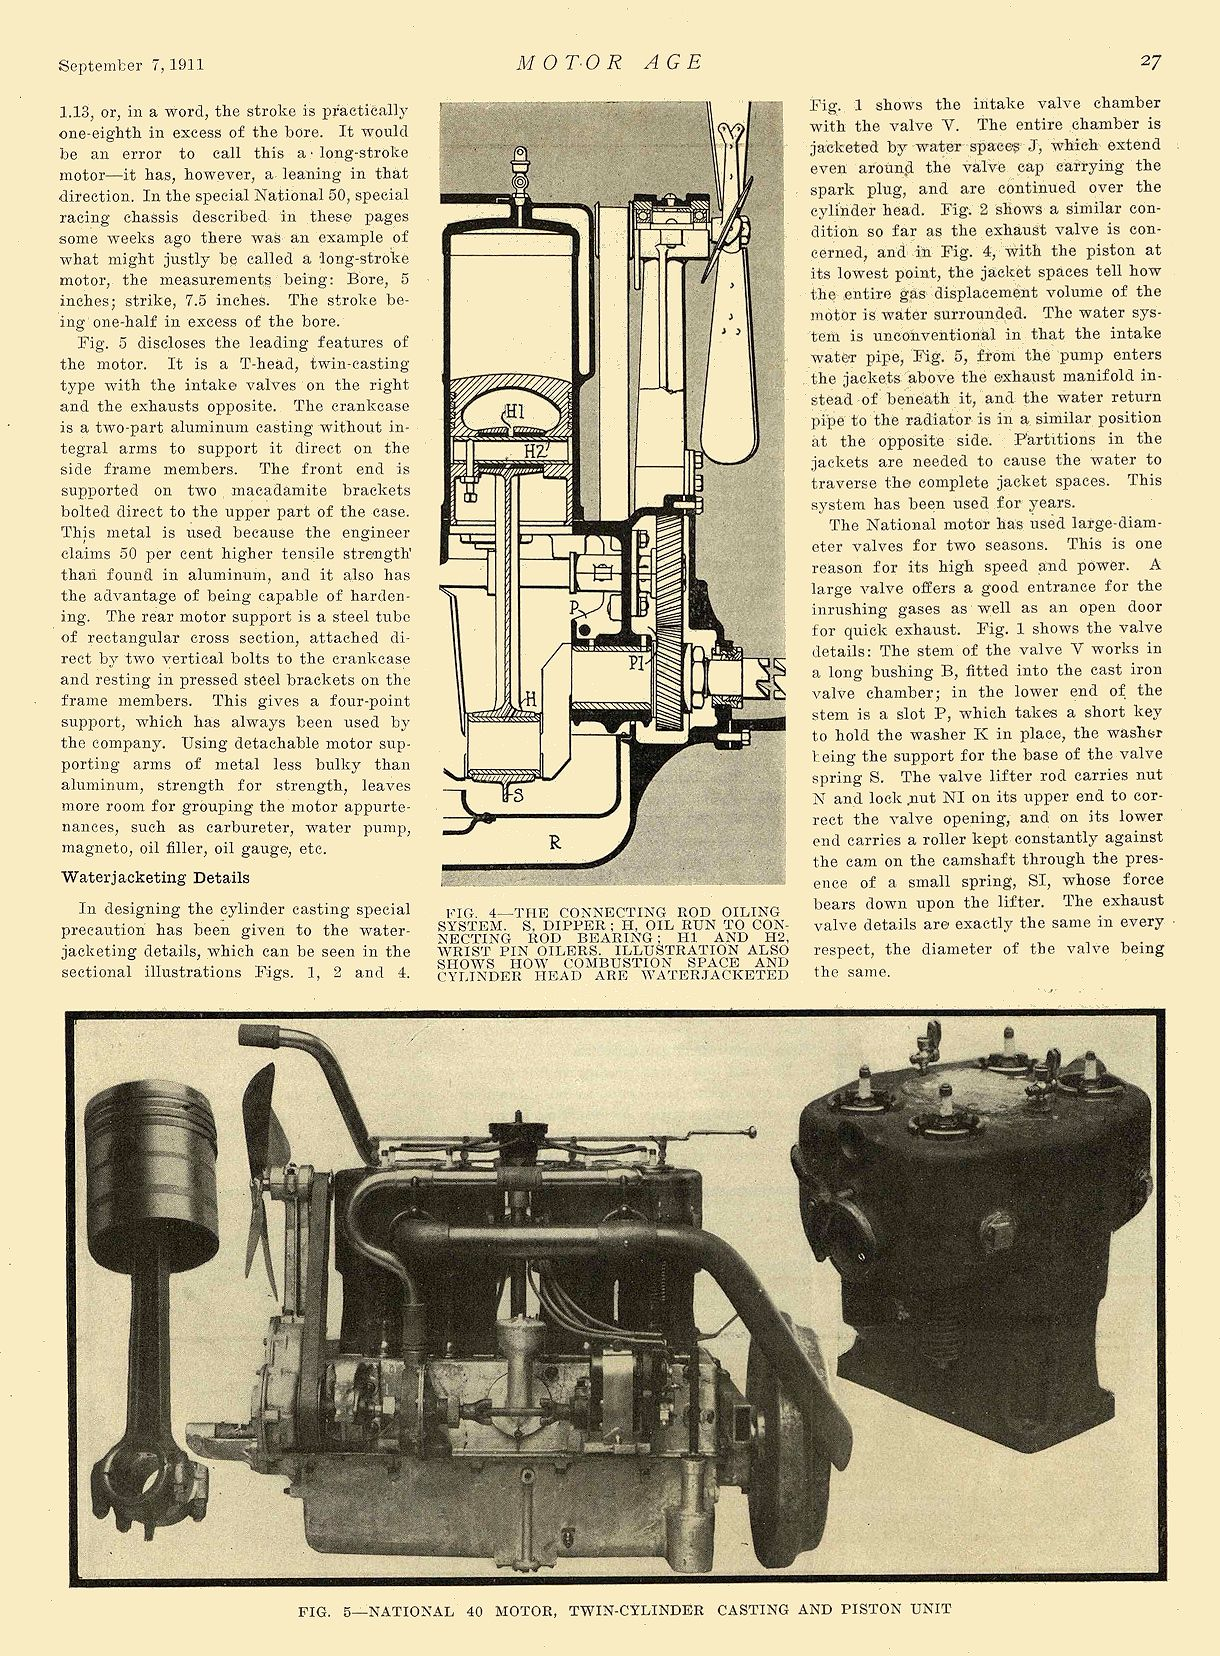 1912 9 7 NATIONAL Article The National 40—Series S National Motor Vehicle Co. Indianapolis, IND MOTOR AGE September 7, 1911 8.25″x12″ page 27